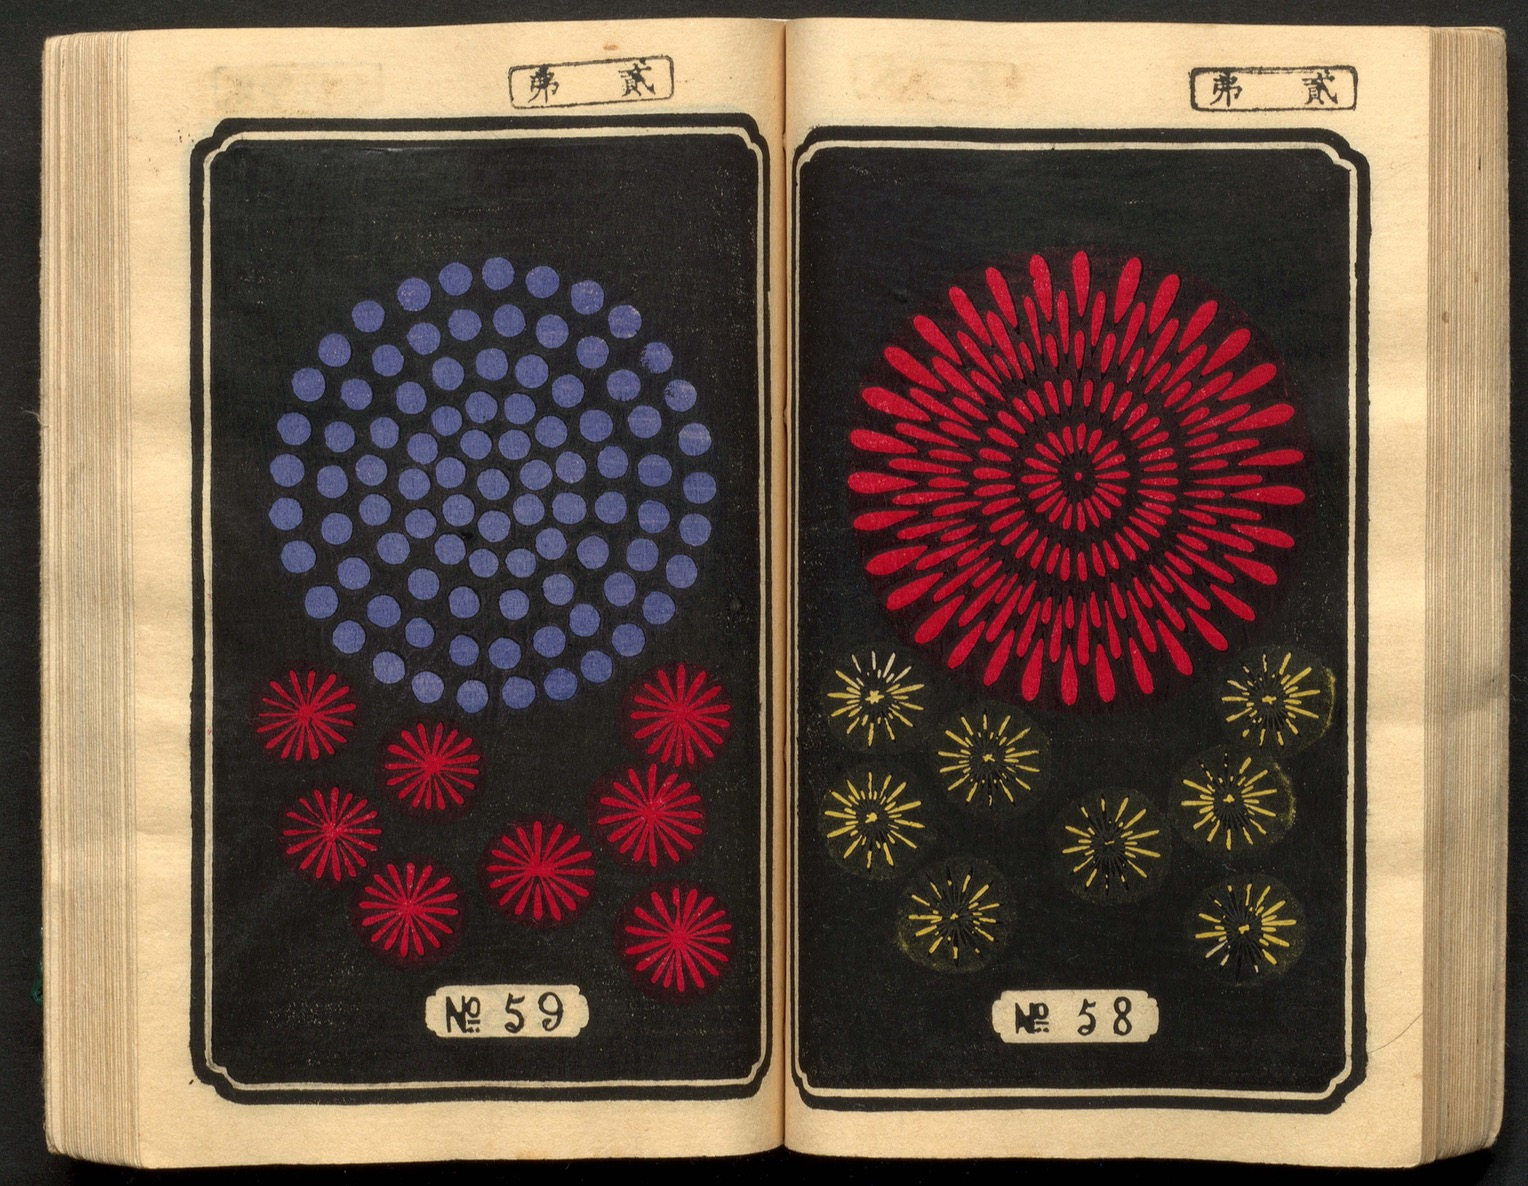 Archive of old Japanese fireworks catalogs